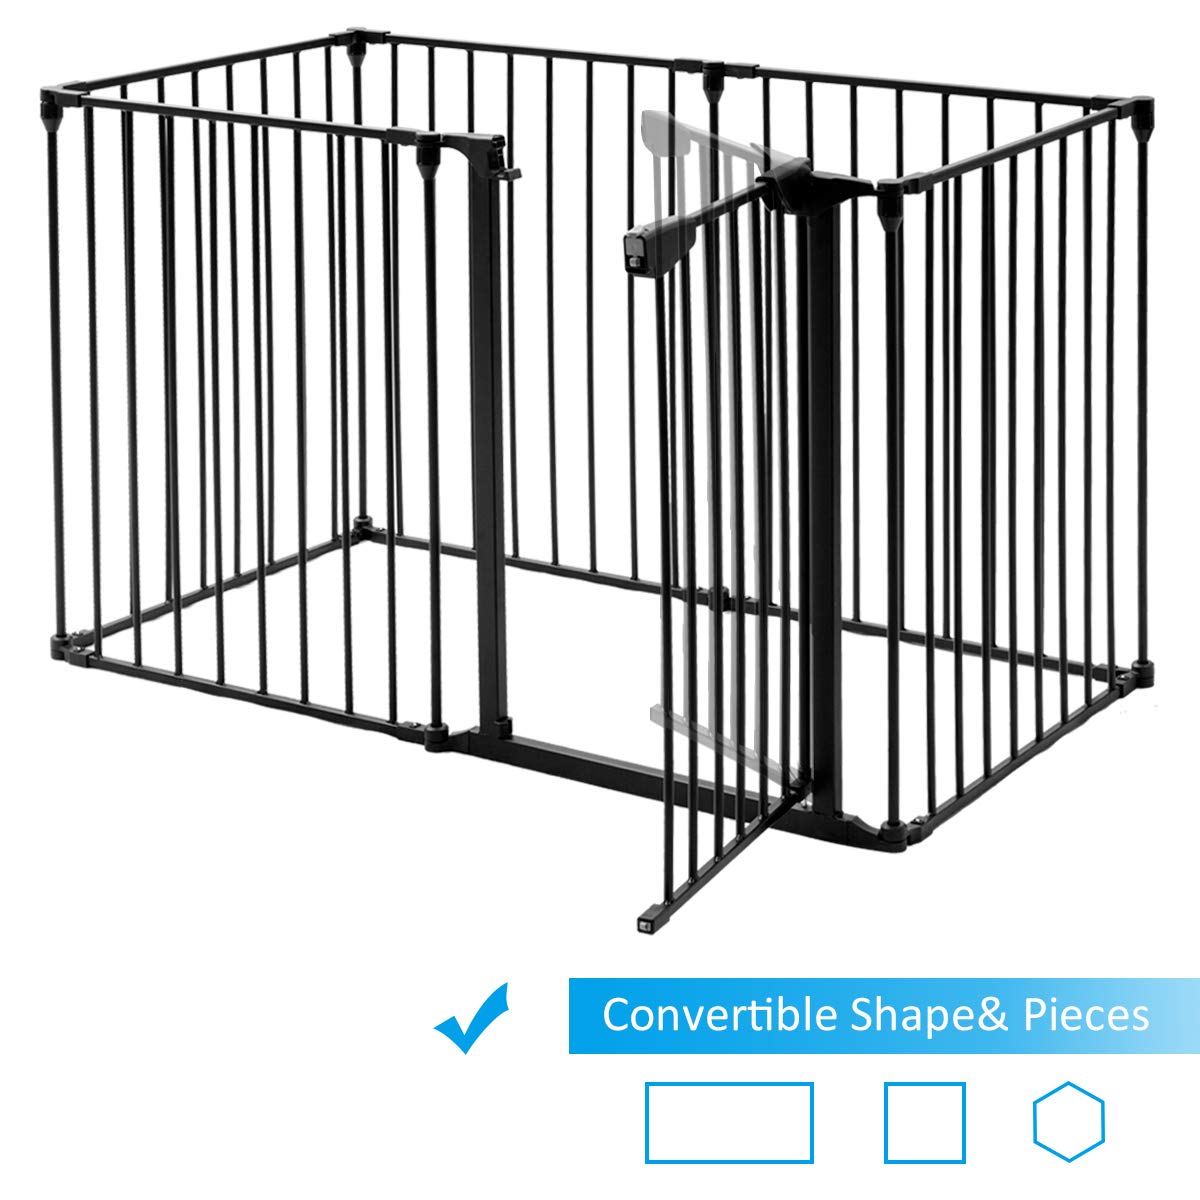 Yard Barrie Room Divider COSTWAY 6/&8 Panel Baby Playpen Metal Foldable Design Multiple Use for Pet Fence 6 Panels, Black Fire Guard